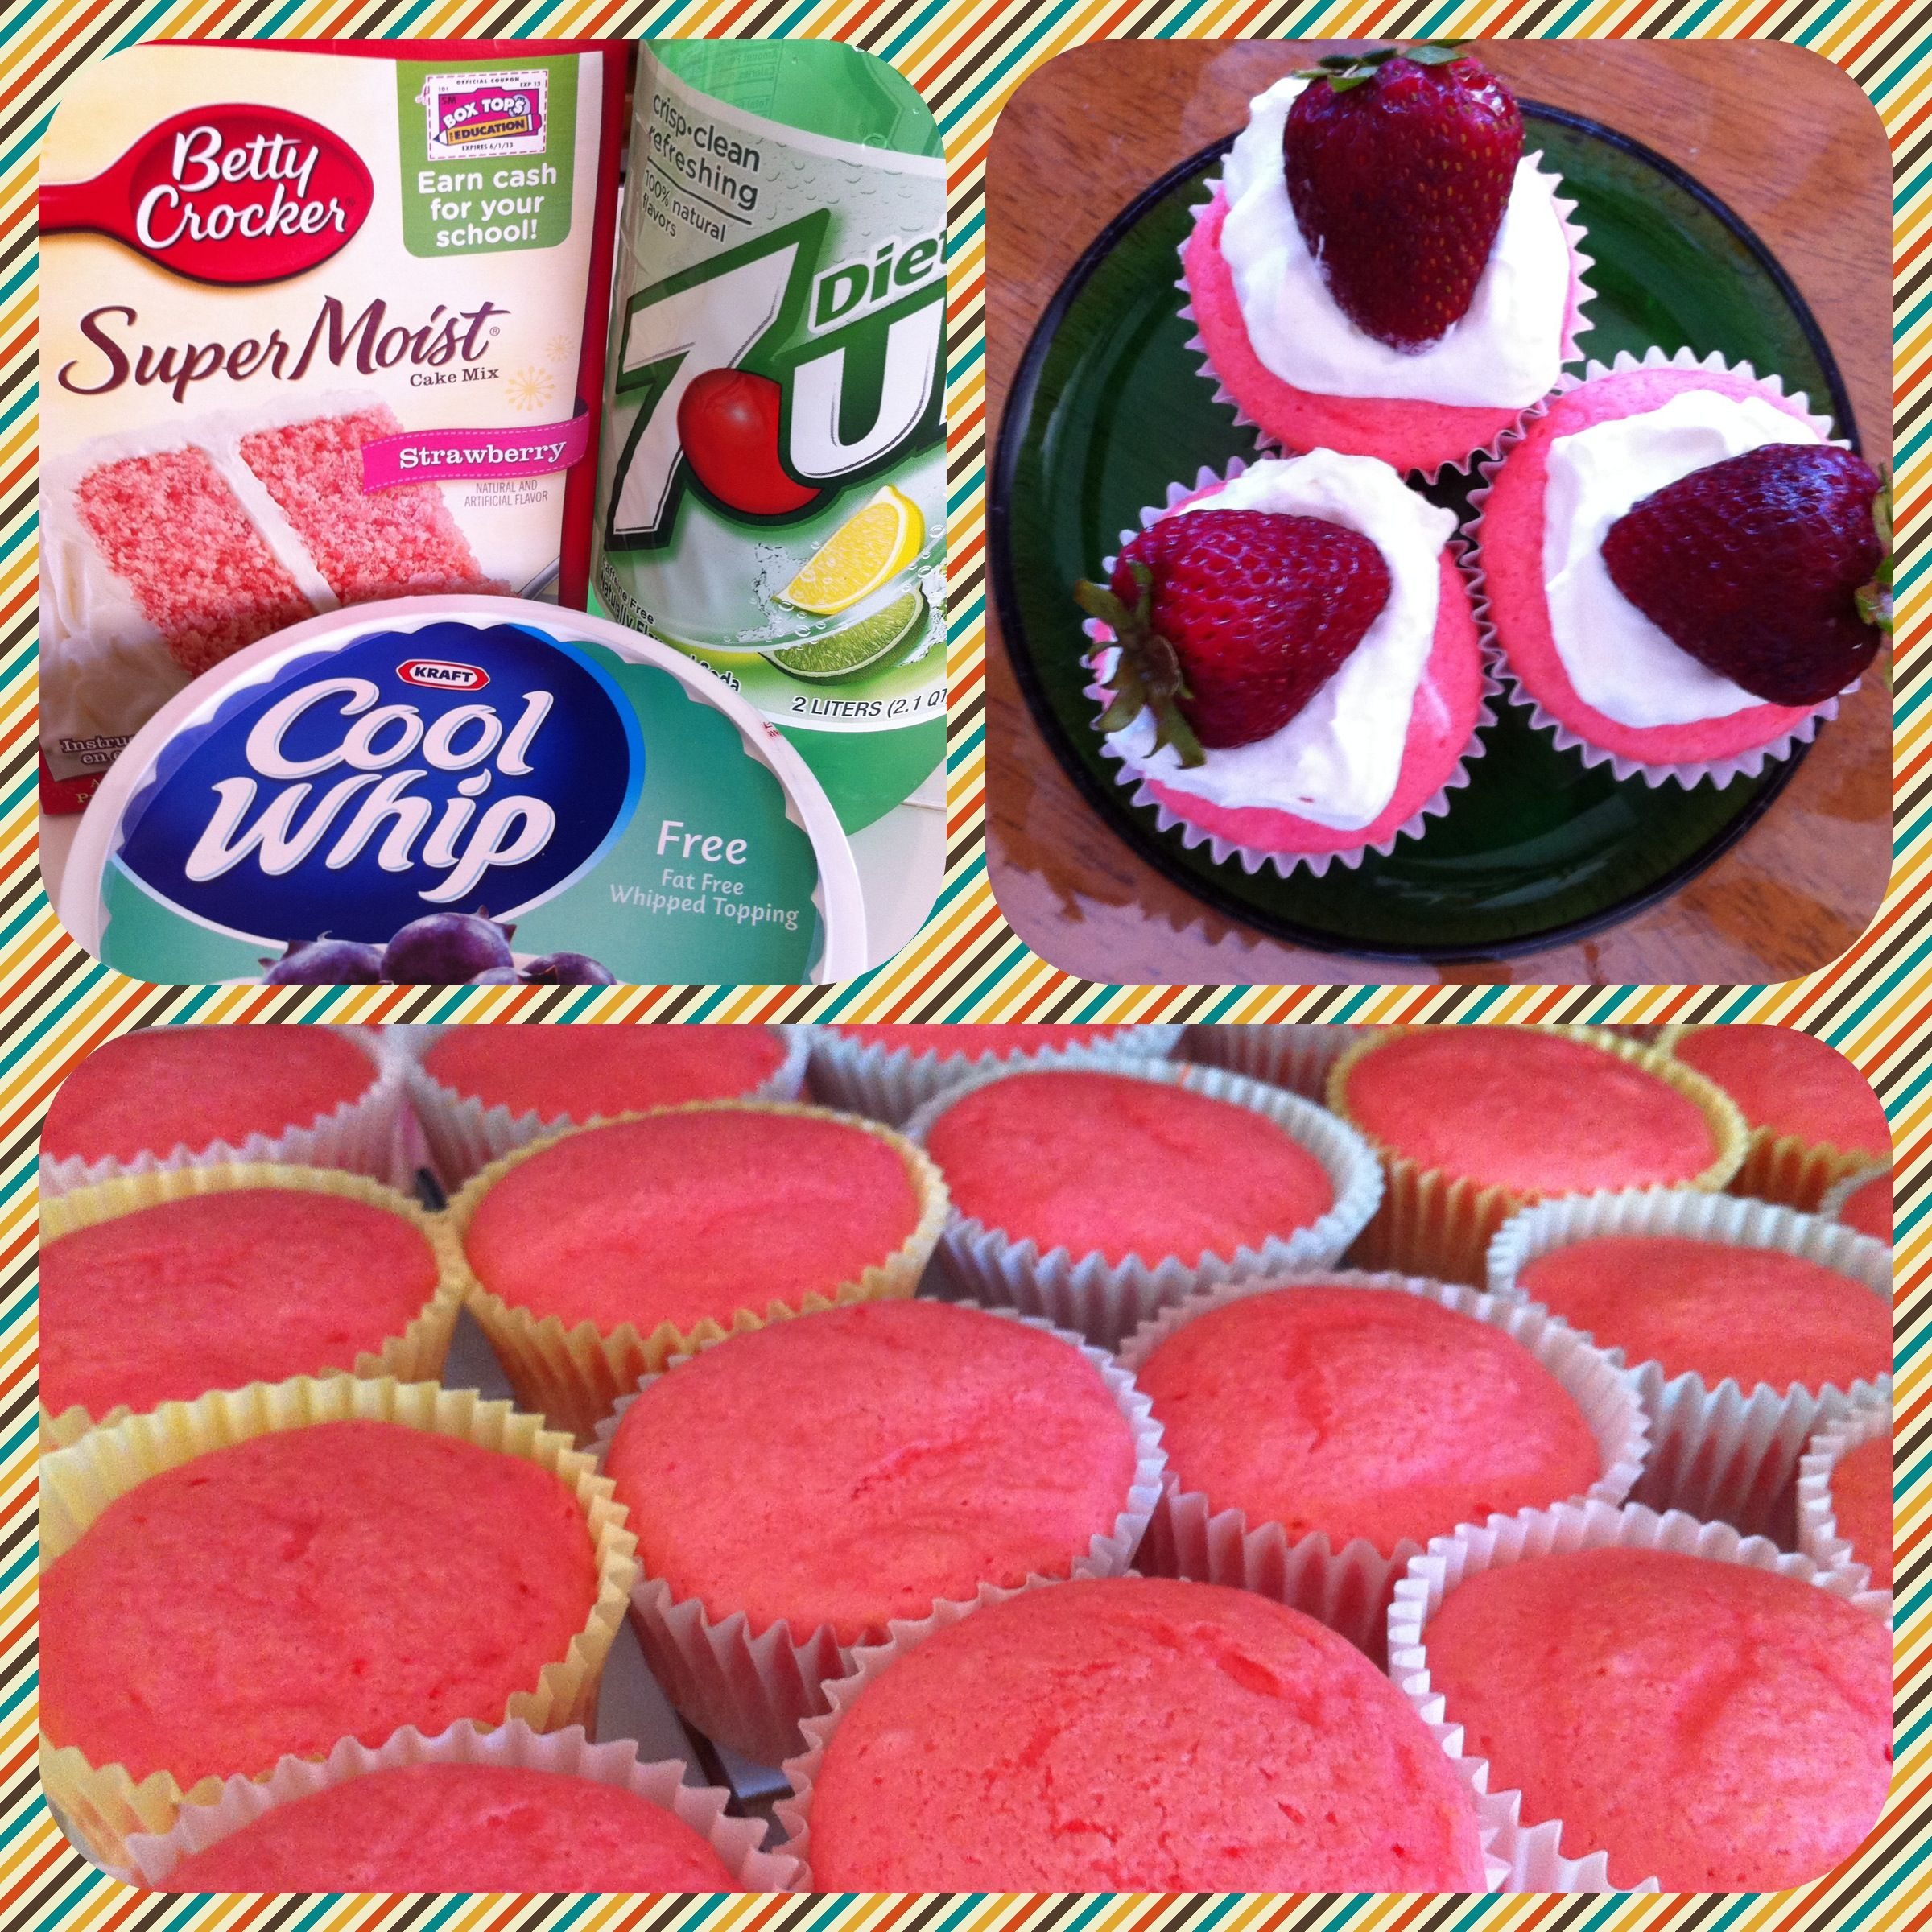 Lite Strawberry Cupcakes!  Less than 100 calories each!! Replace all ingredients on package with 12oz Diet 7-up and bake as directed.